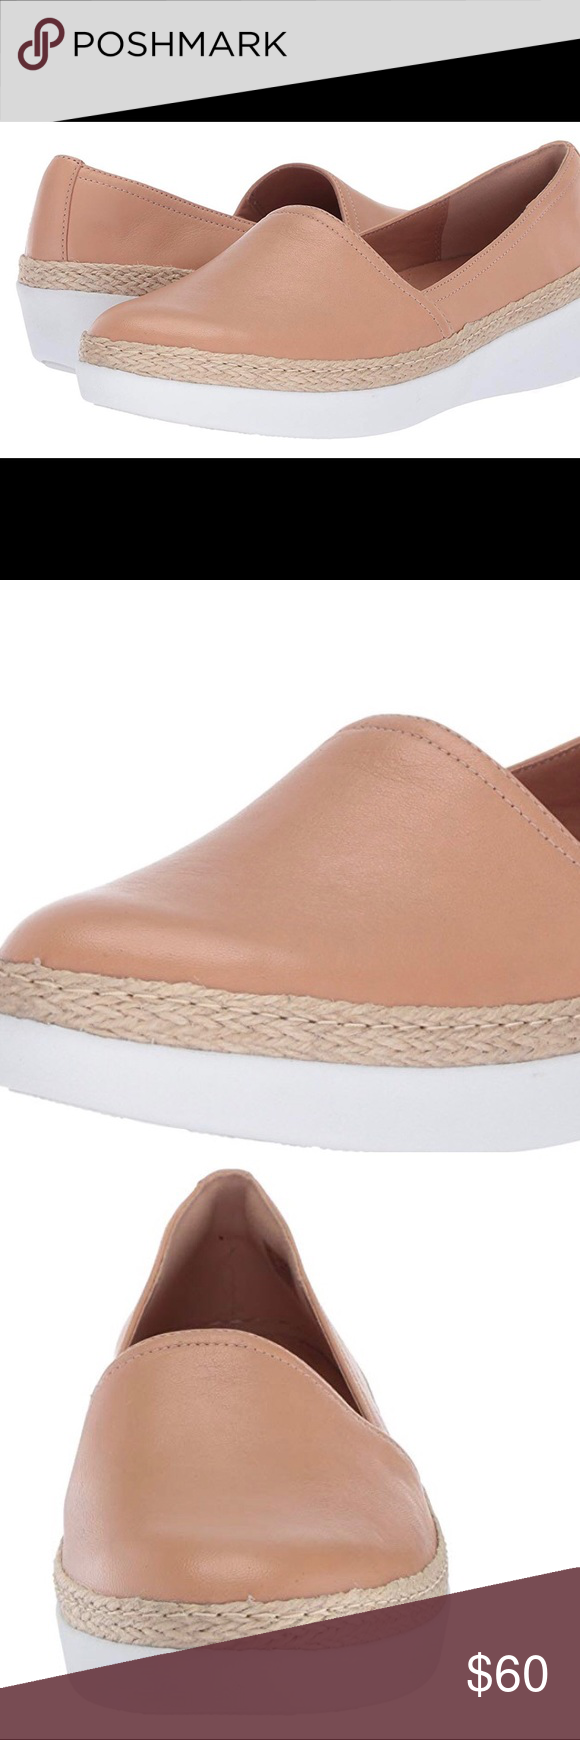 0e979095d 🎀FitFlop 🎀 Women s Casa Loafers Sneaker Fitflop Loafers Sneaker 100%  Leather and Textile Rubber